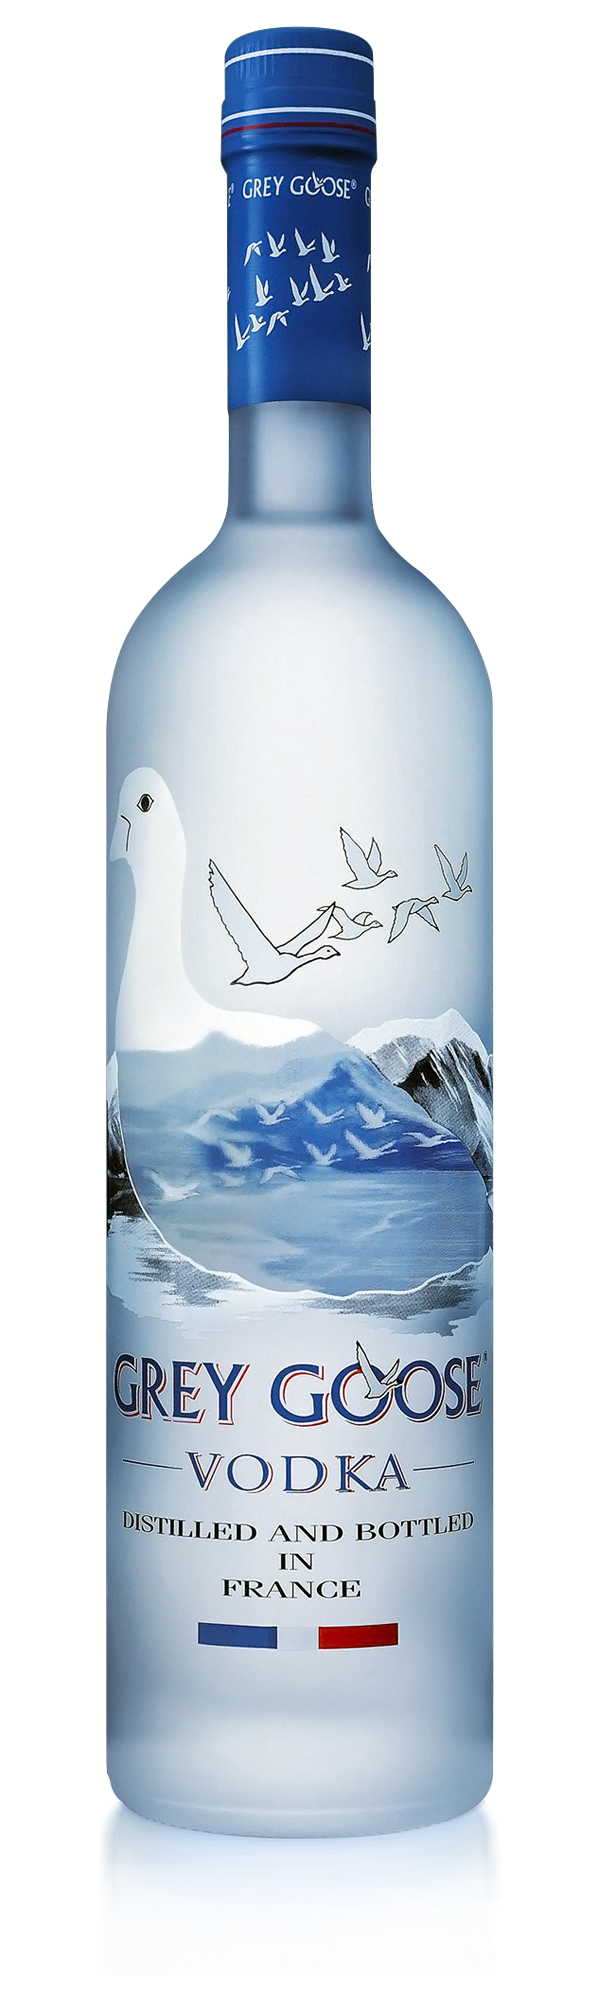 vodka png transparent vodkapng images pluspng